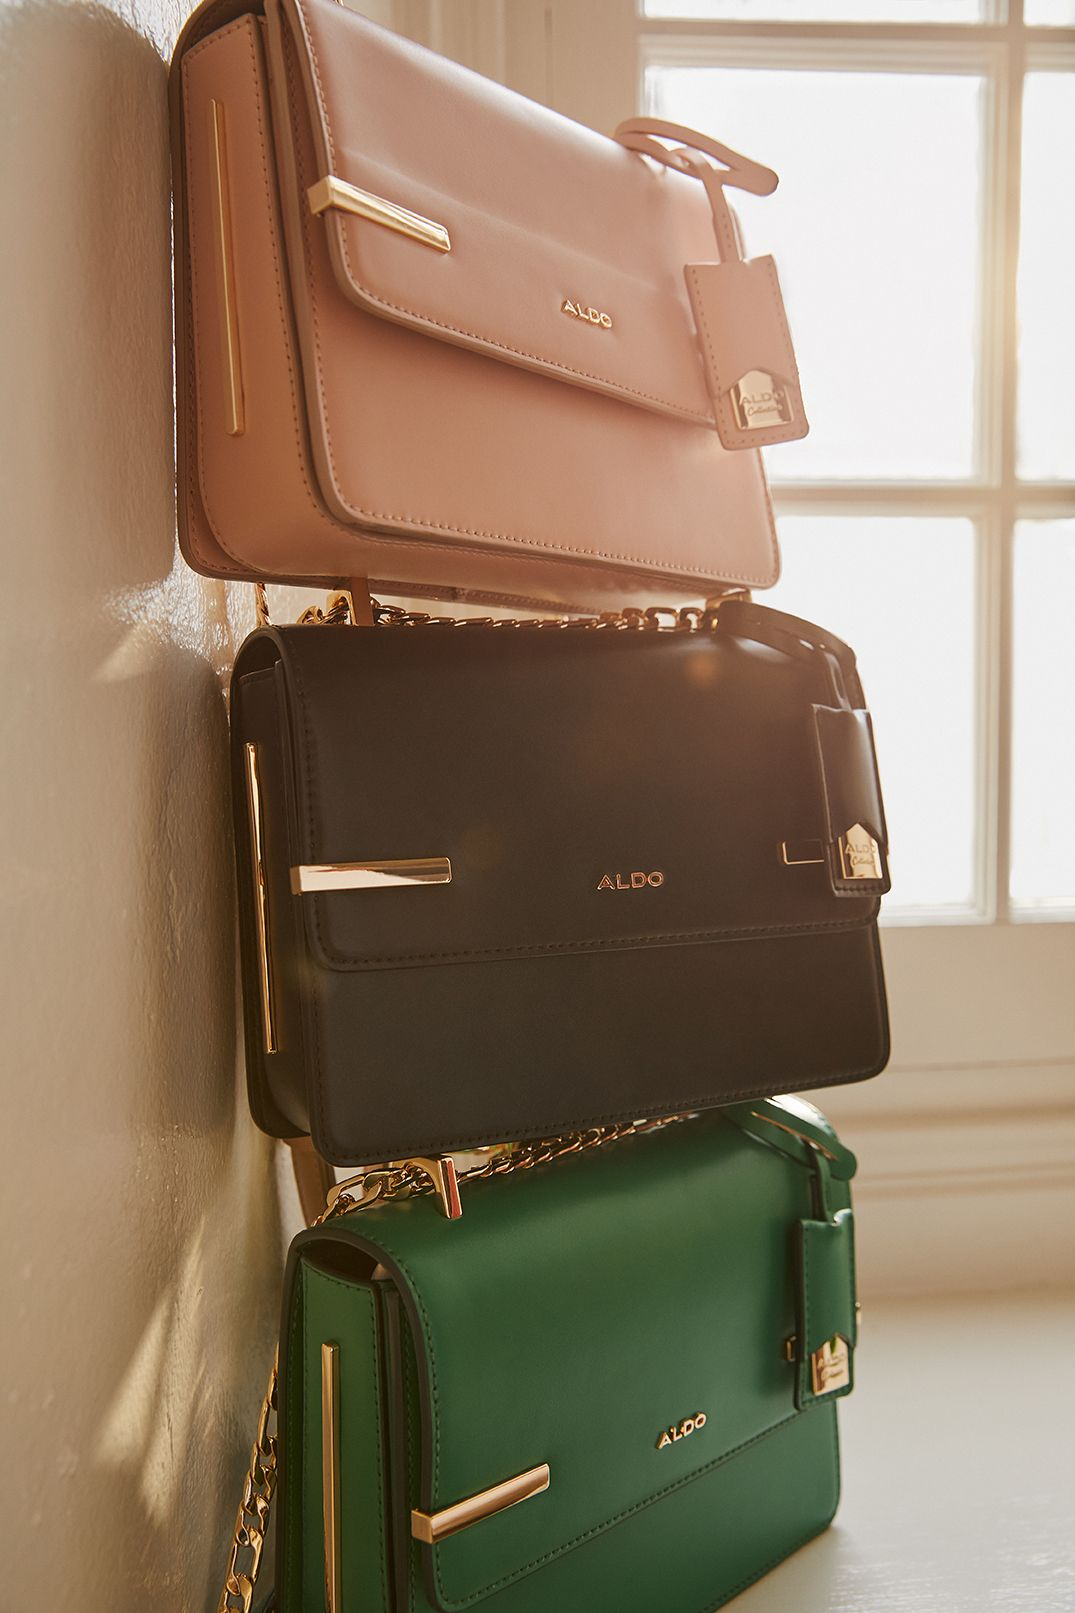 Three of the same smooth leatherette aldo purse. Metal gold accessories, in green, black and coral colours. Piled up in a white room.